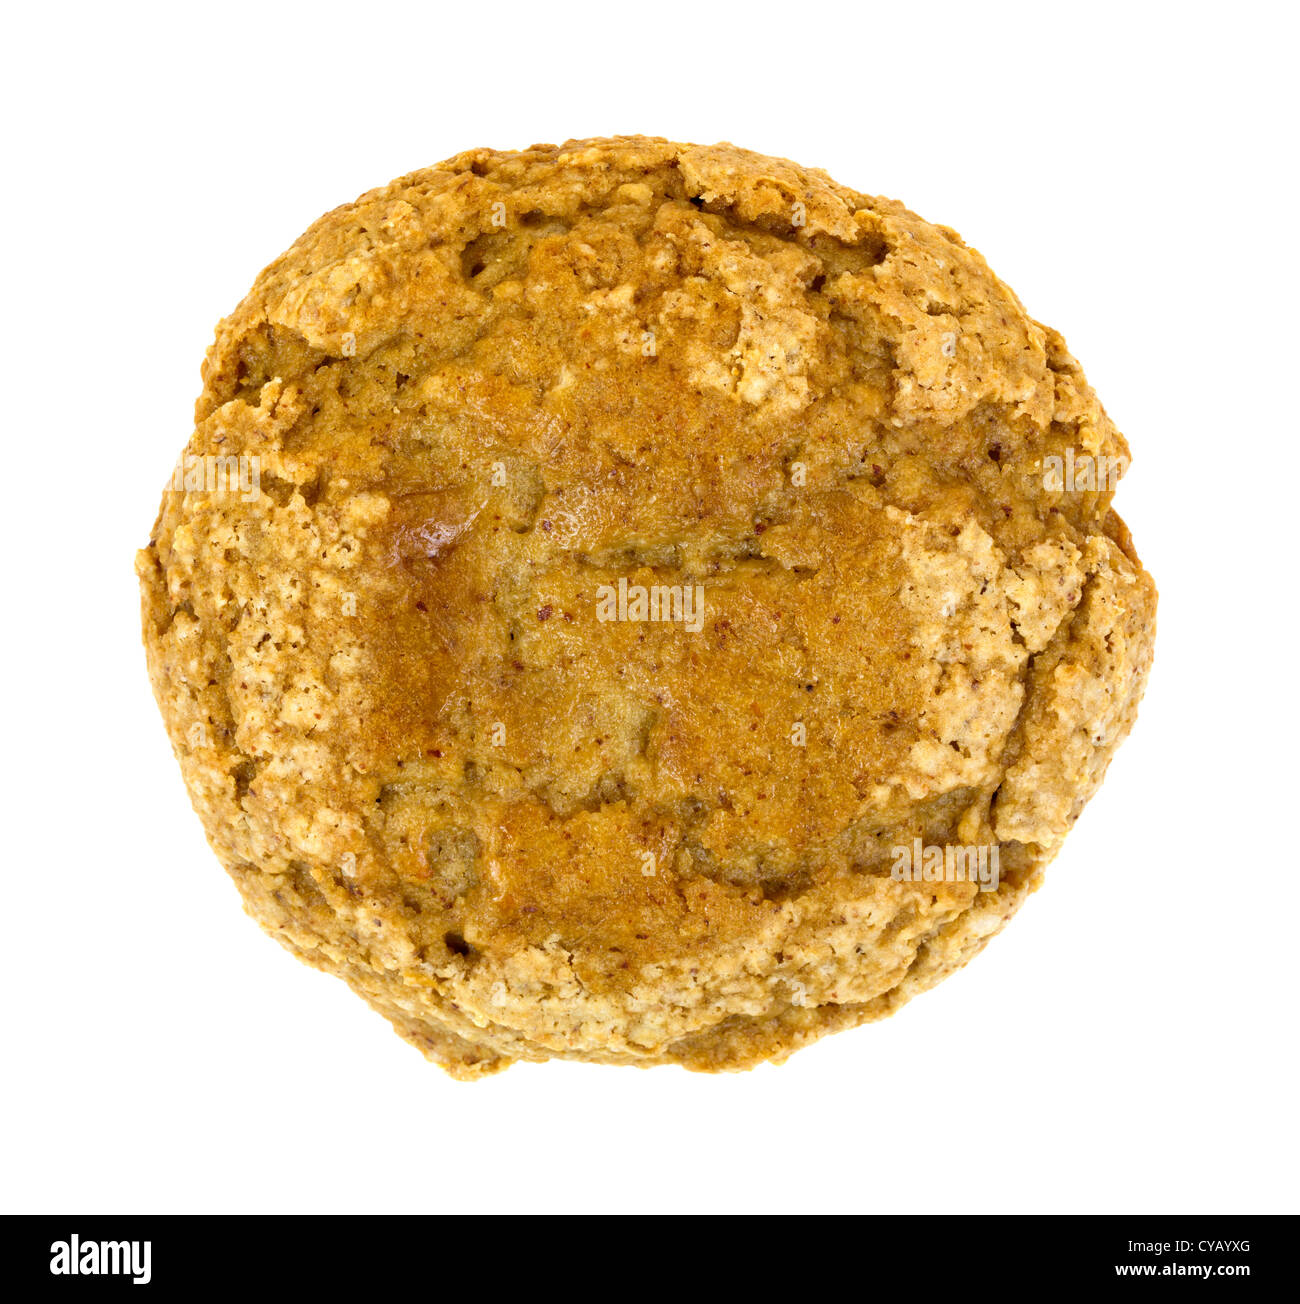 Top view of a home made banana nut muffin on a white background. - Stock Image